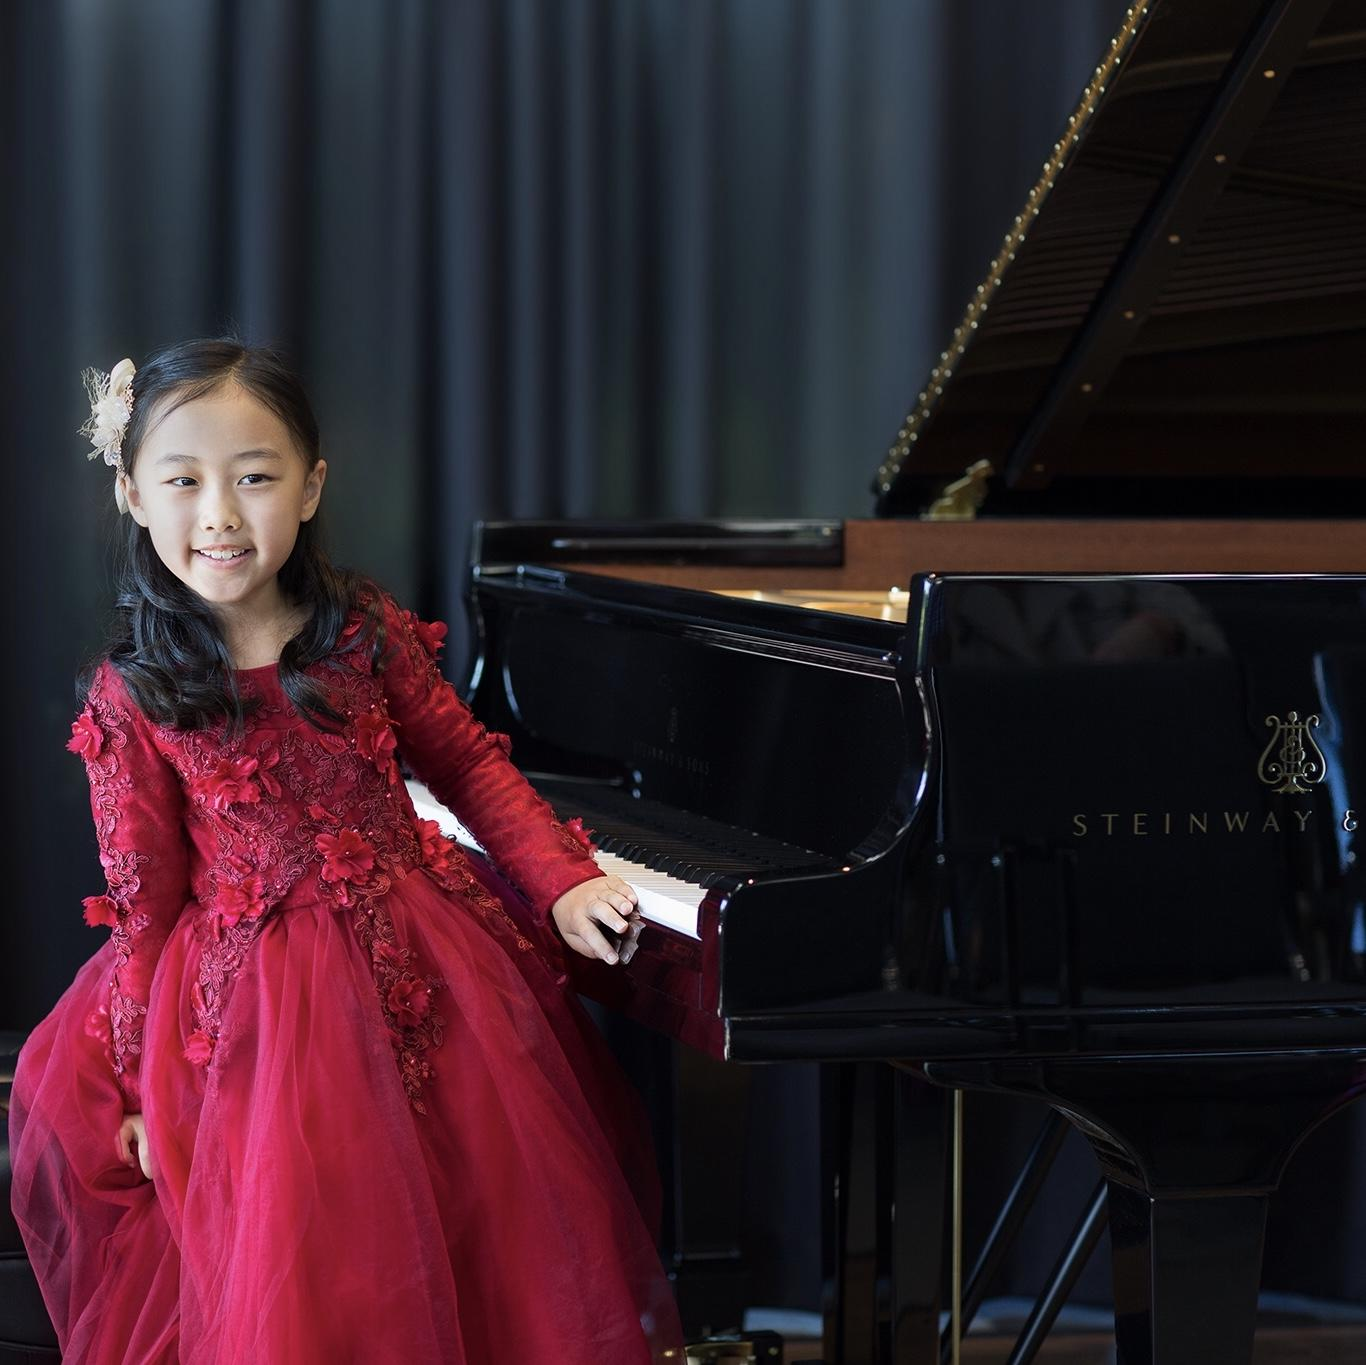 @SteinwayAndSons Follow Congratulations to the winners of the 2019 Steinway Junior Piano Competition! We were delighted to have over 2,000 talented participants ages 18 and under across the U.S. and Canada; we commend the dedication of all involved. -->Showroom results here: steinway.com/misc/steinway-…